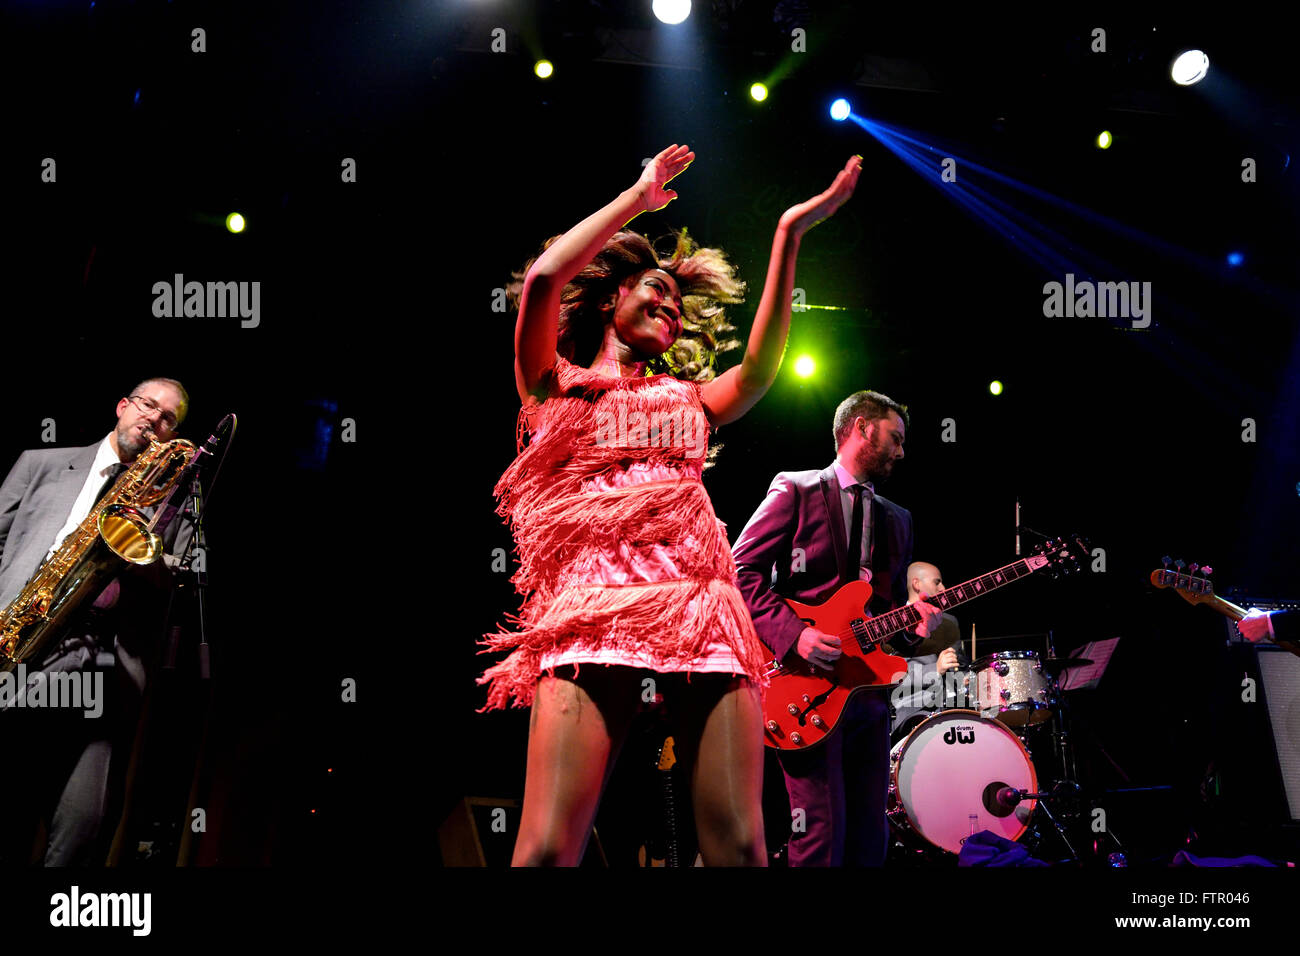 BARCELONA - JAN 9: The Excitements (soul band) performs at Apolo venue on January 9, 2015 in Barcelona, Spain. - Stock Image